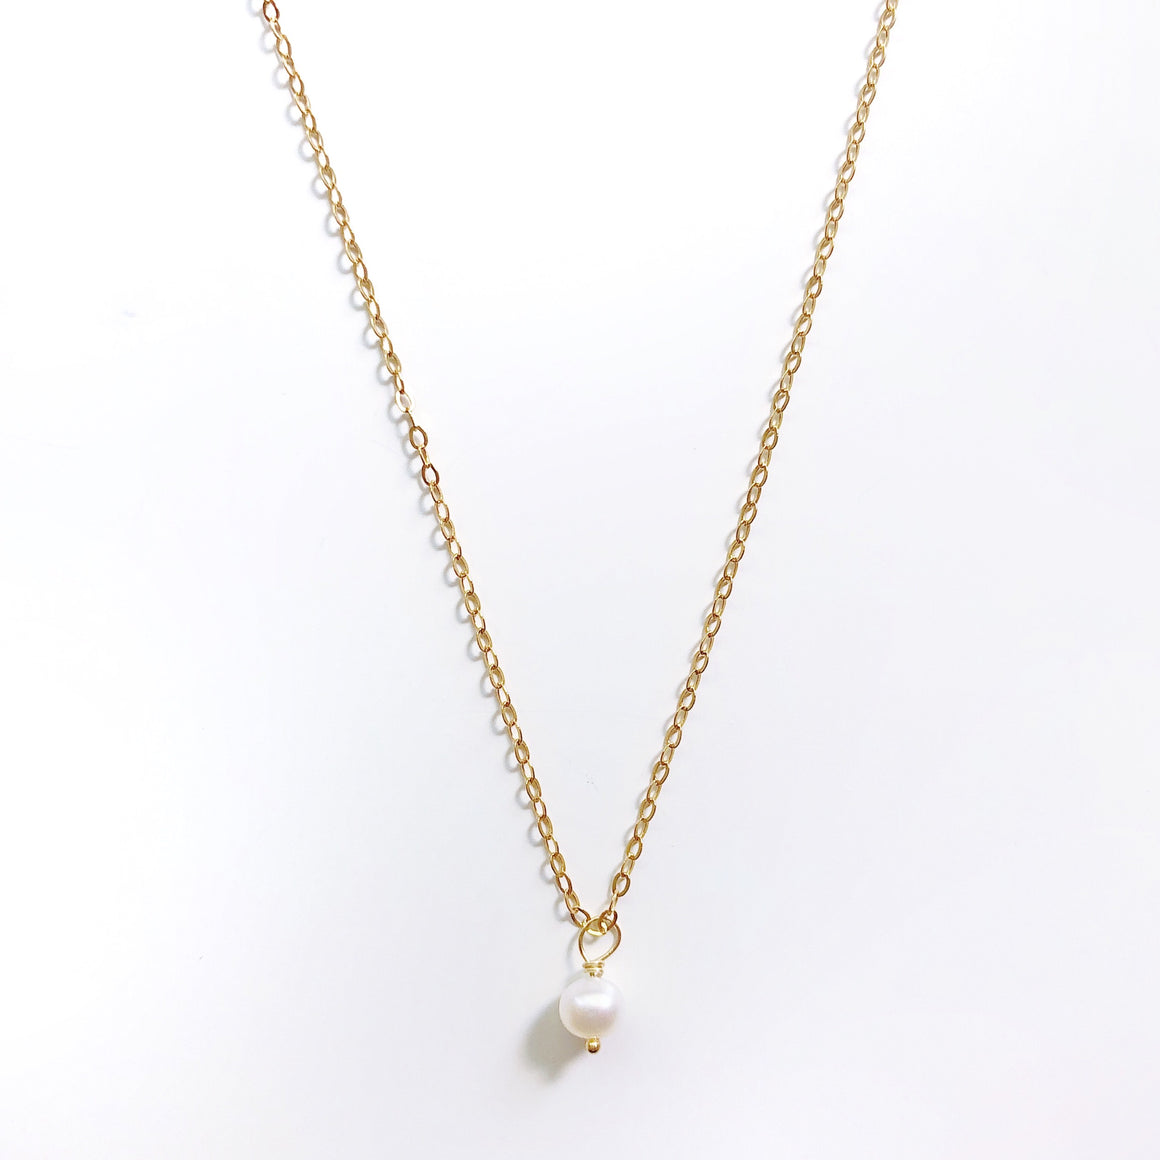 Pearl Necklace | JASMINE VIRANI